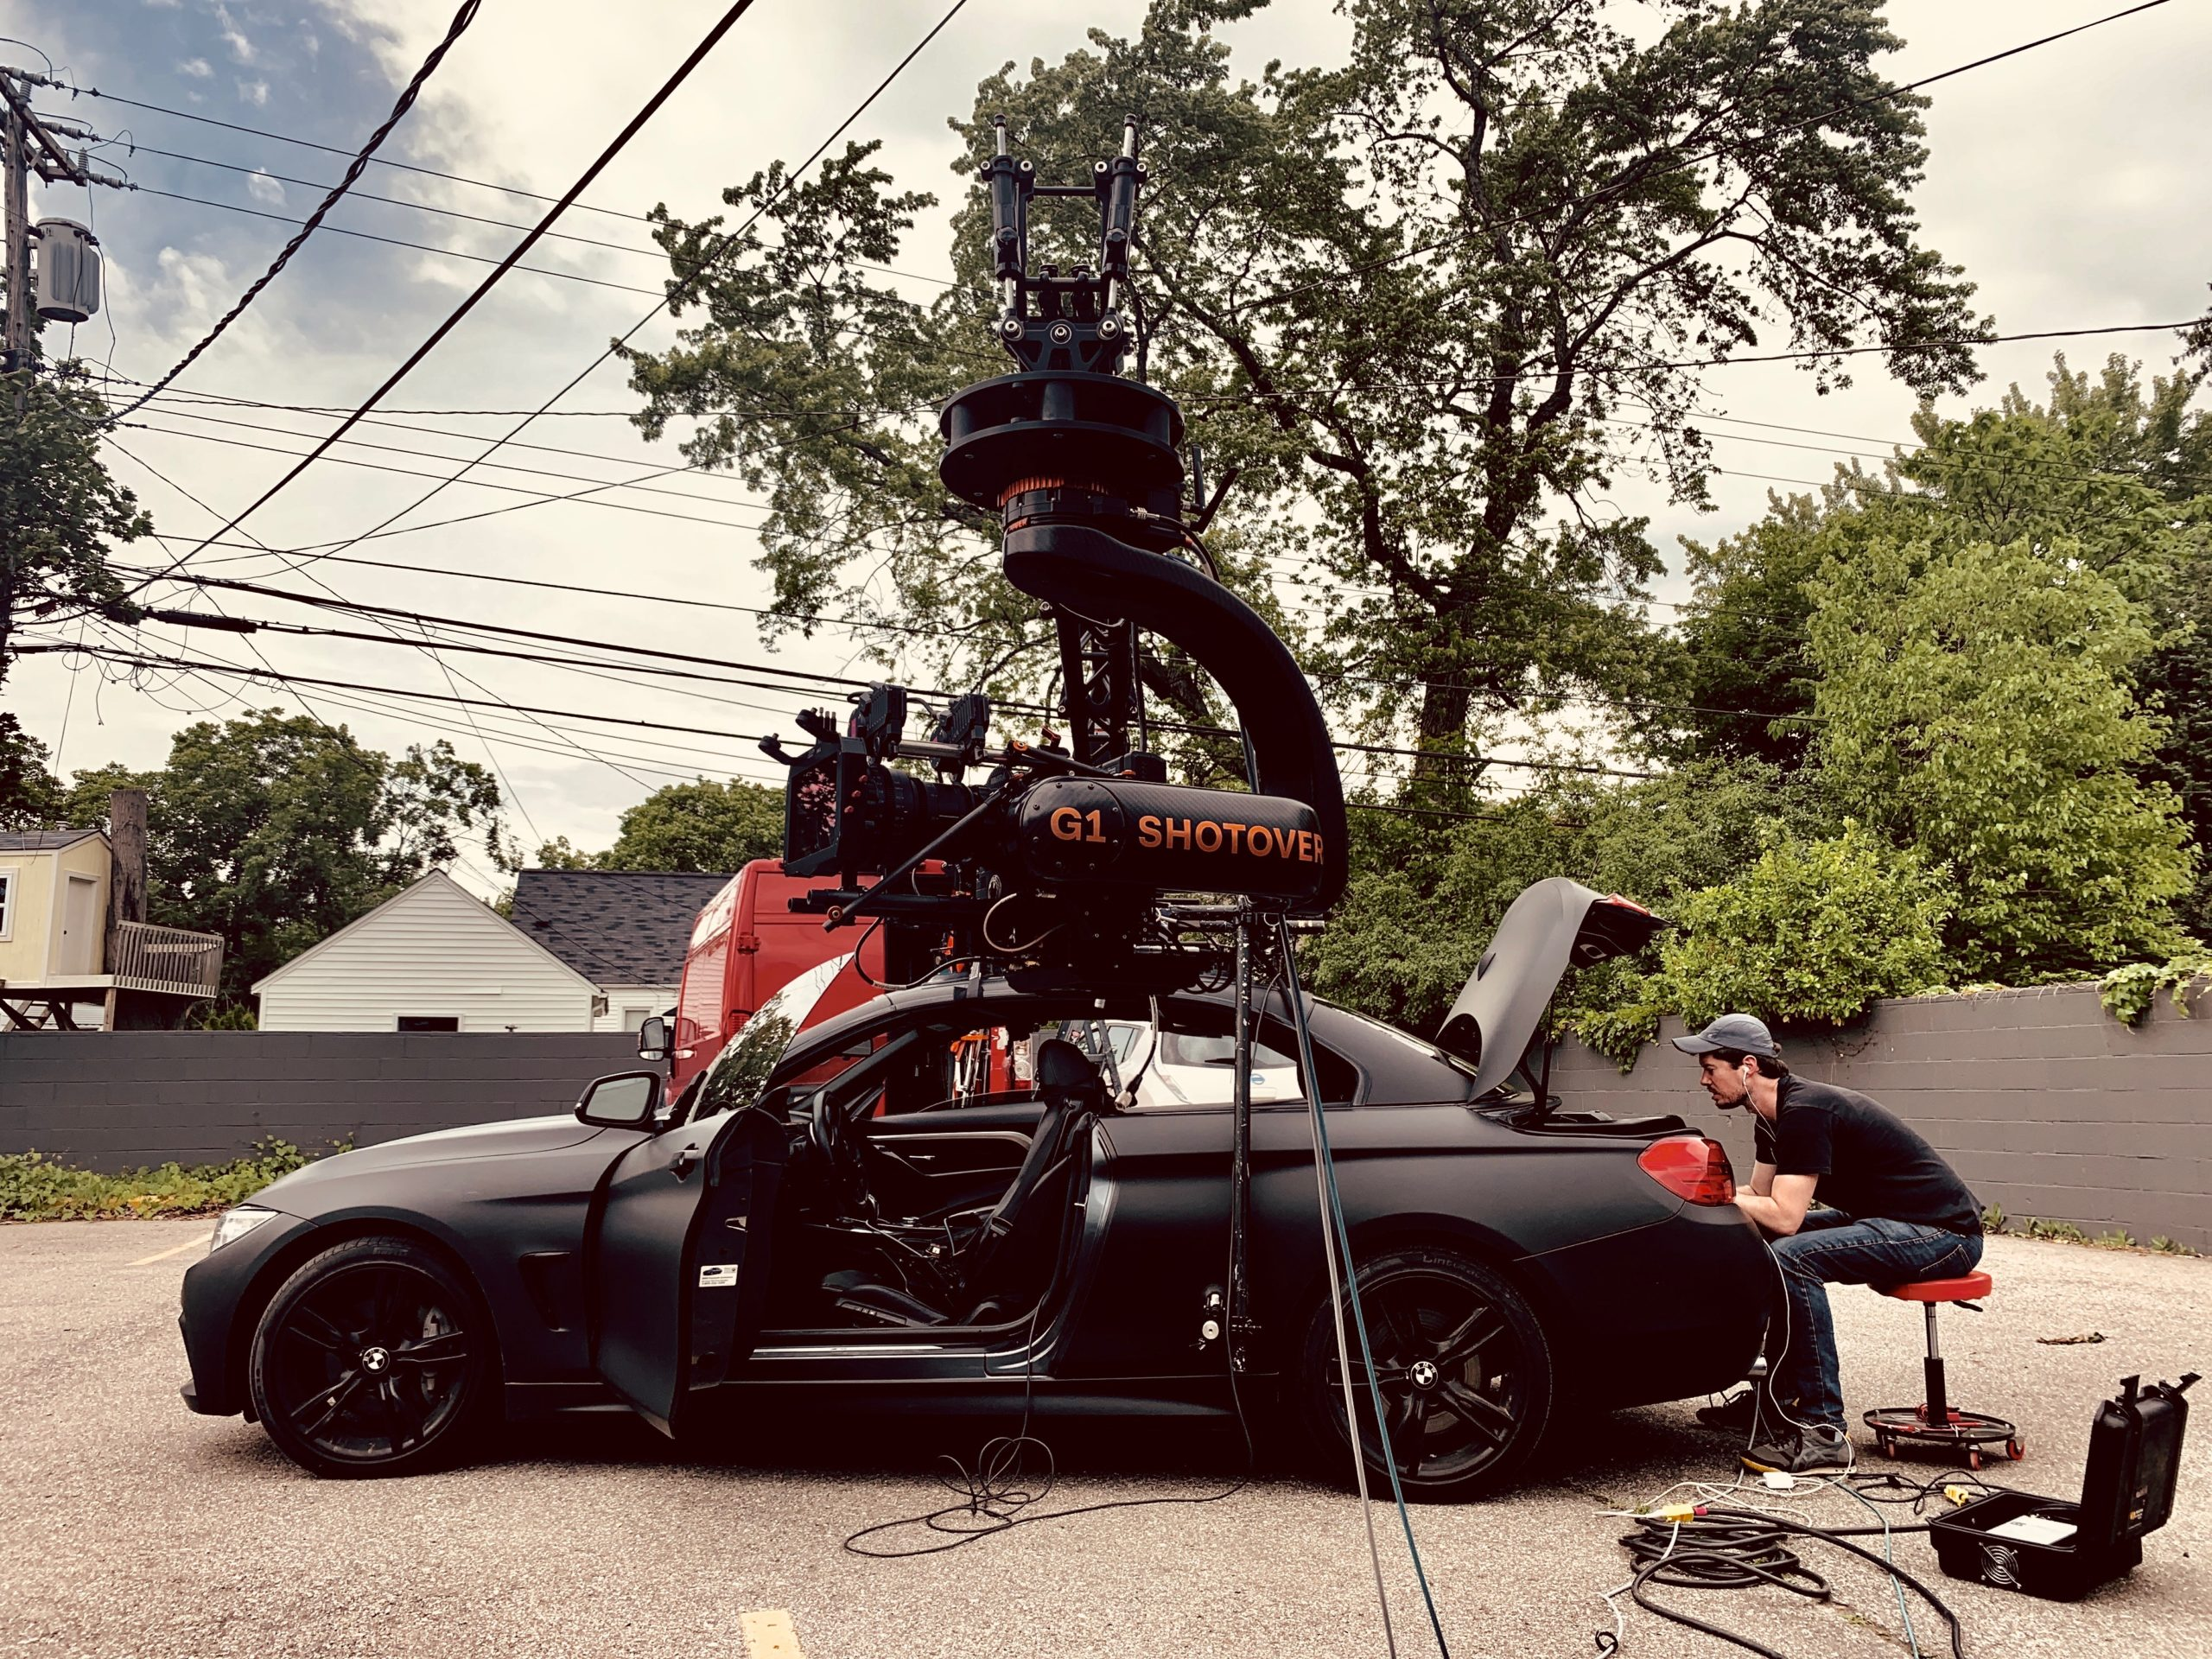 G1 Shotover, camera / light & grip rental, red, monstro, vv, 8k, camera rental, detroit based production company, film camera rental